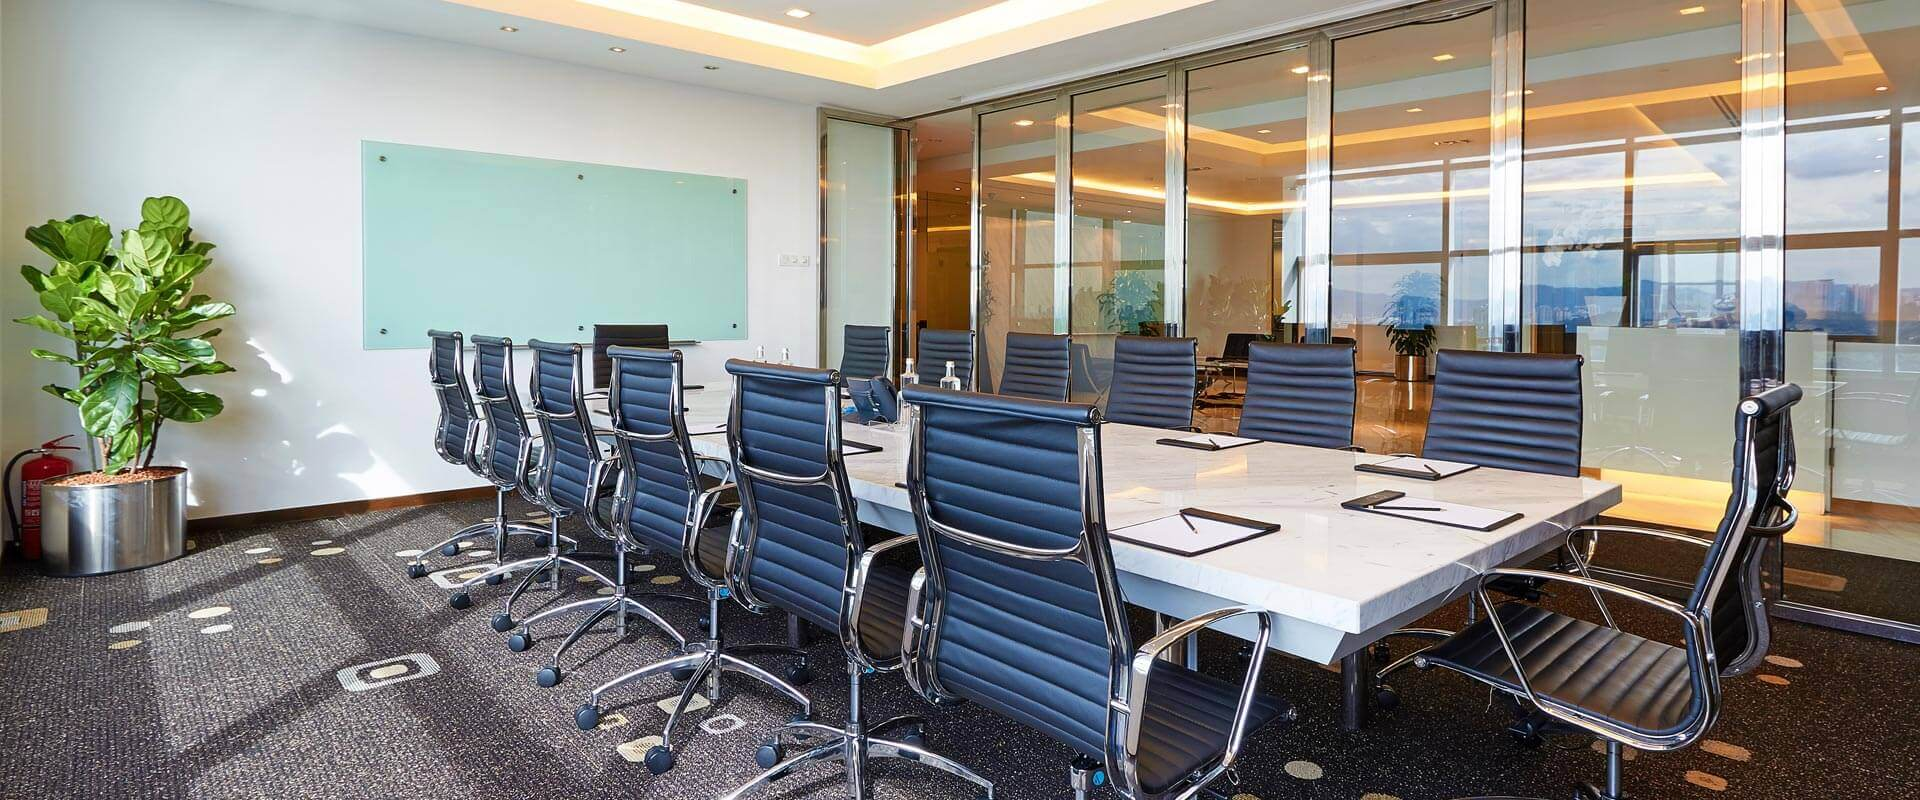 Boardroom Rental pages